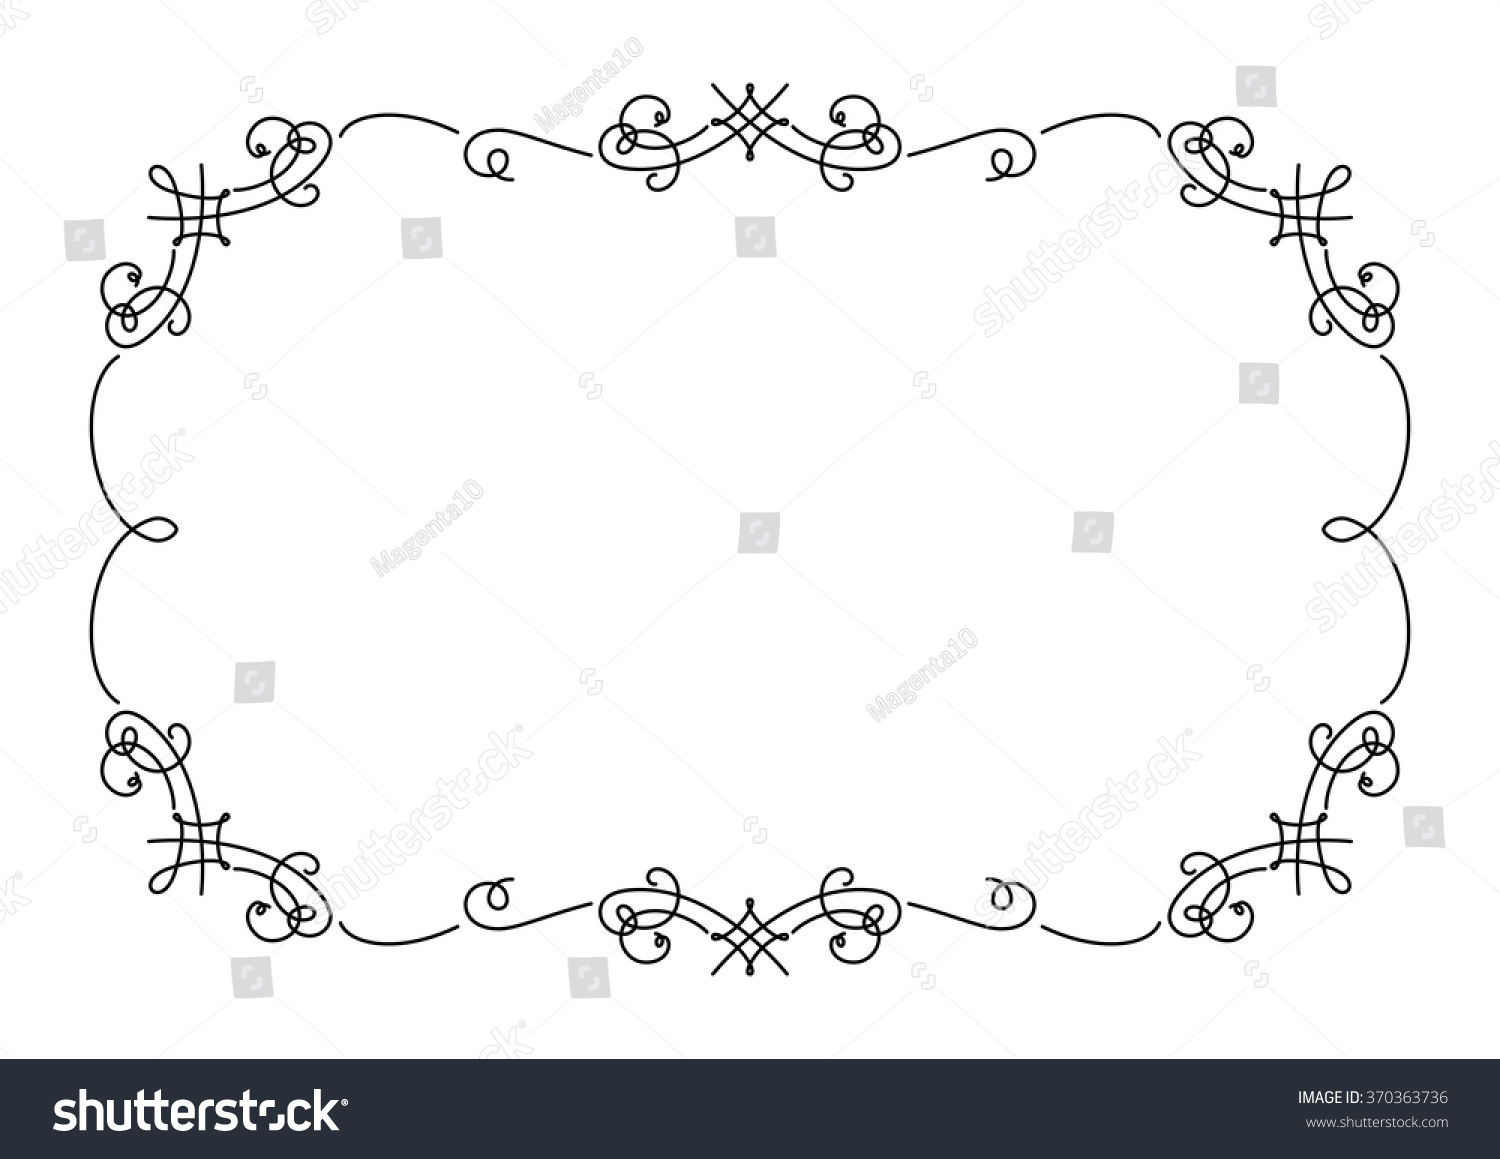 Simple Calligraphy Border Designs Imgkid The